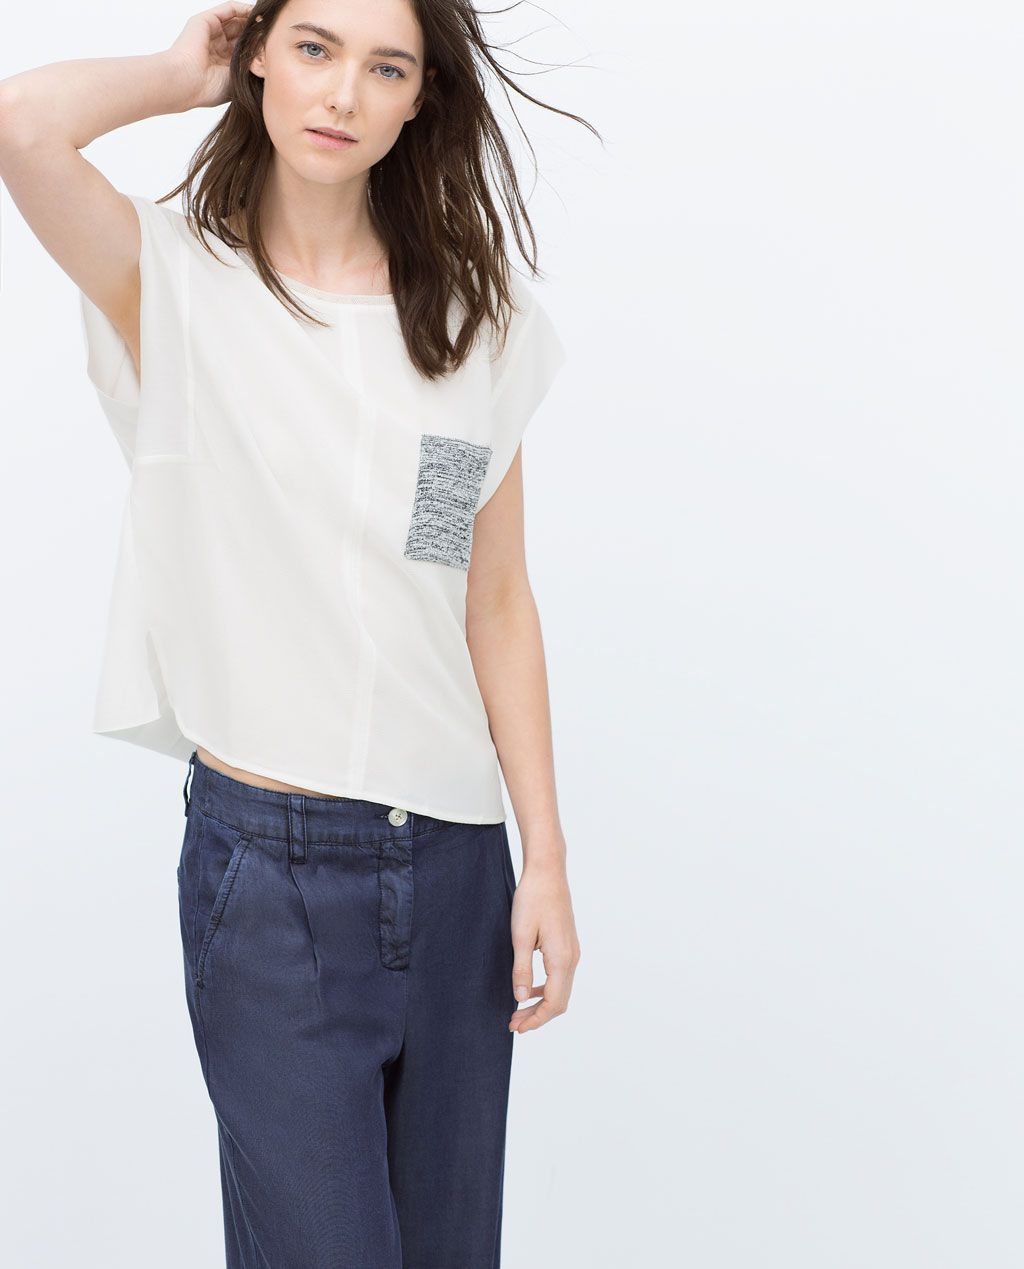 23149a06 T-SHIRT WITH CONTRASTING POCKET-View all-T-shirts-WOMAN-SALE | ZARA United  States Fun twist on a plain white tee!